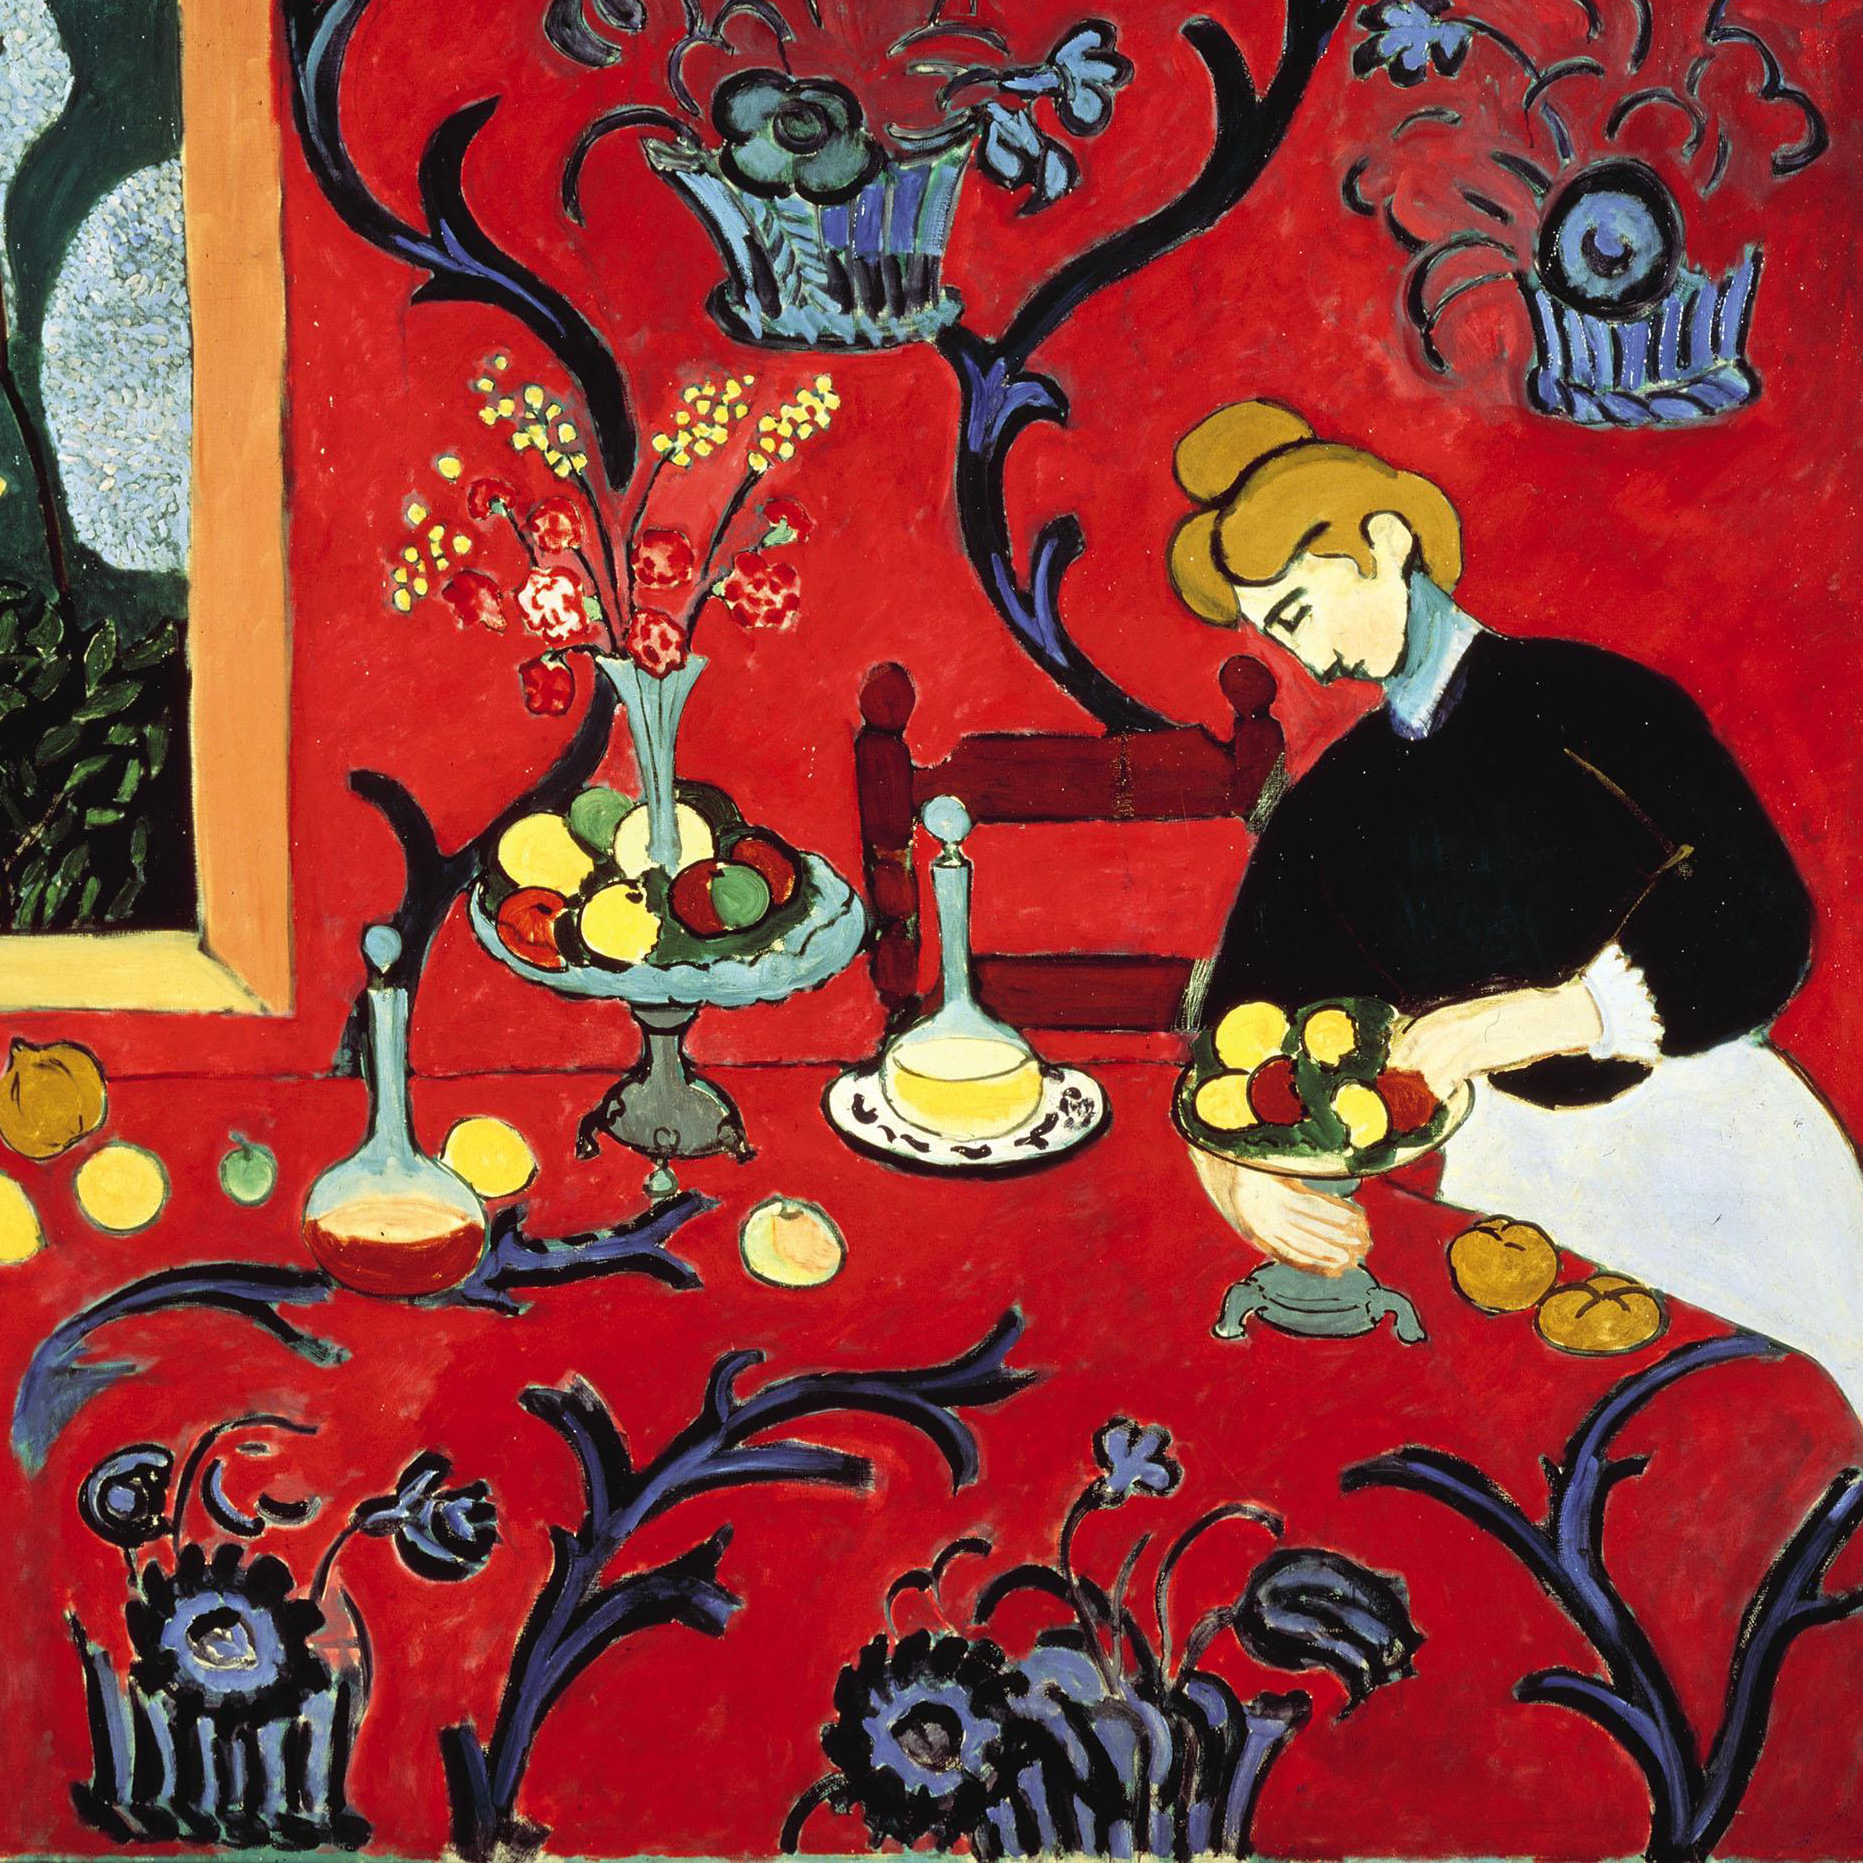 henri_matisse_-_the_dessert_harmony_in_red_-_the_red_room_1908_oil_on_canvas_180_5x221cm_the_heritage_museum